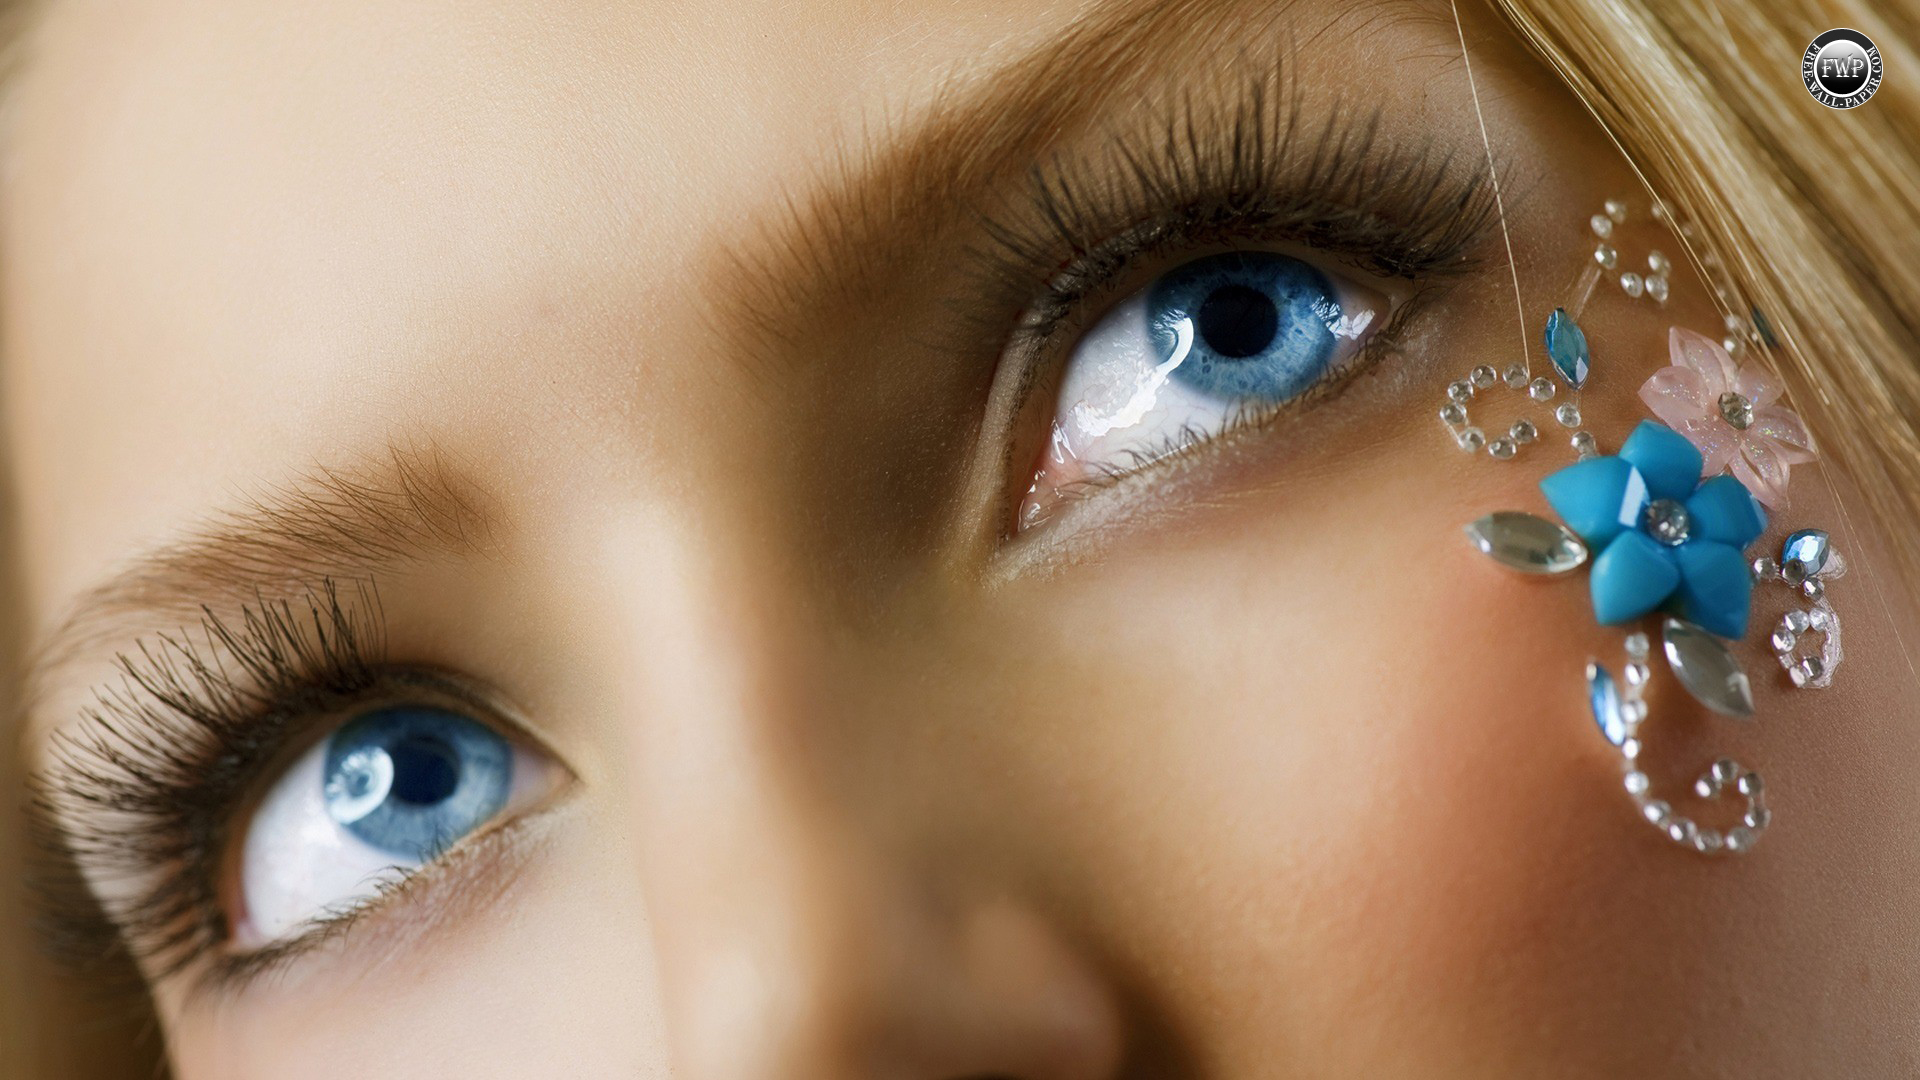 Most Beautiful Eyes Wallpapers - Beautiful Green Eyes Close Up - HD Wallpaper